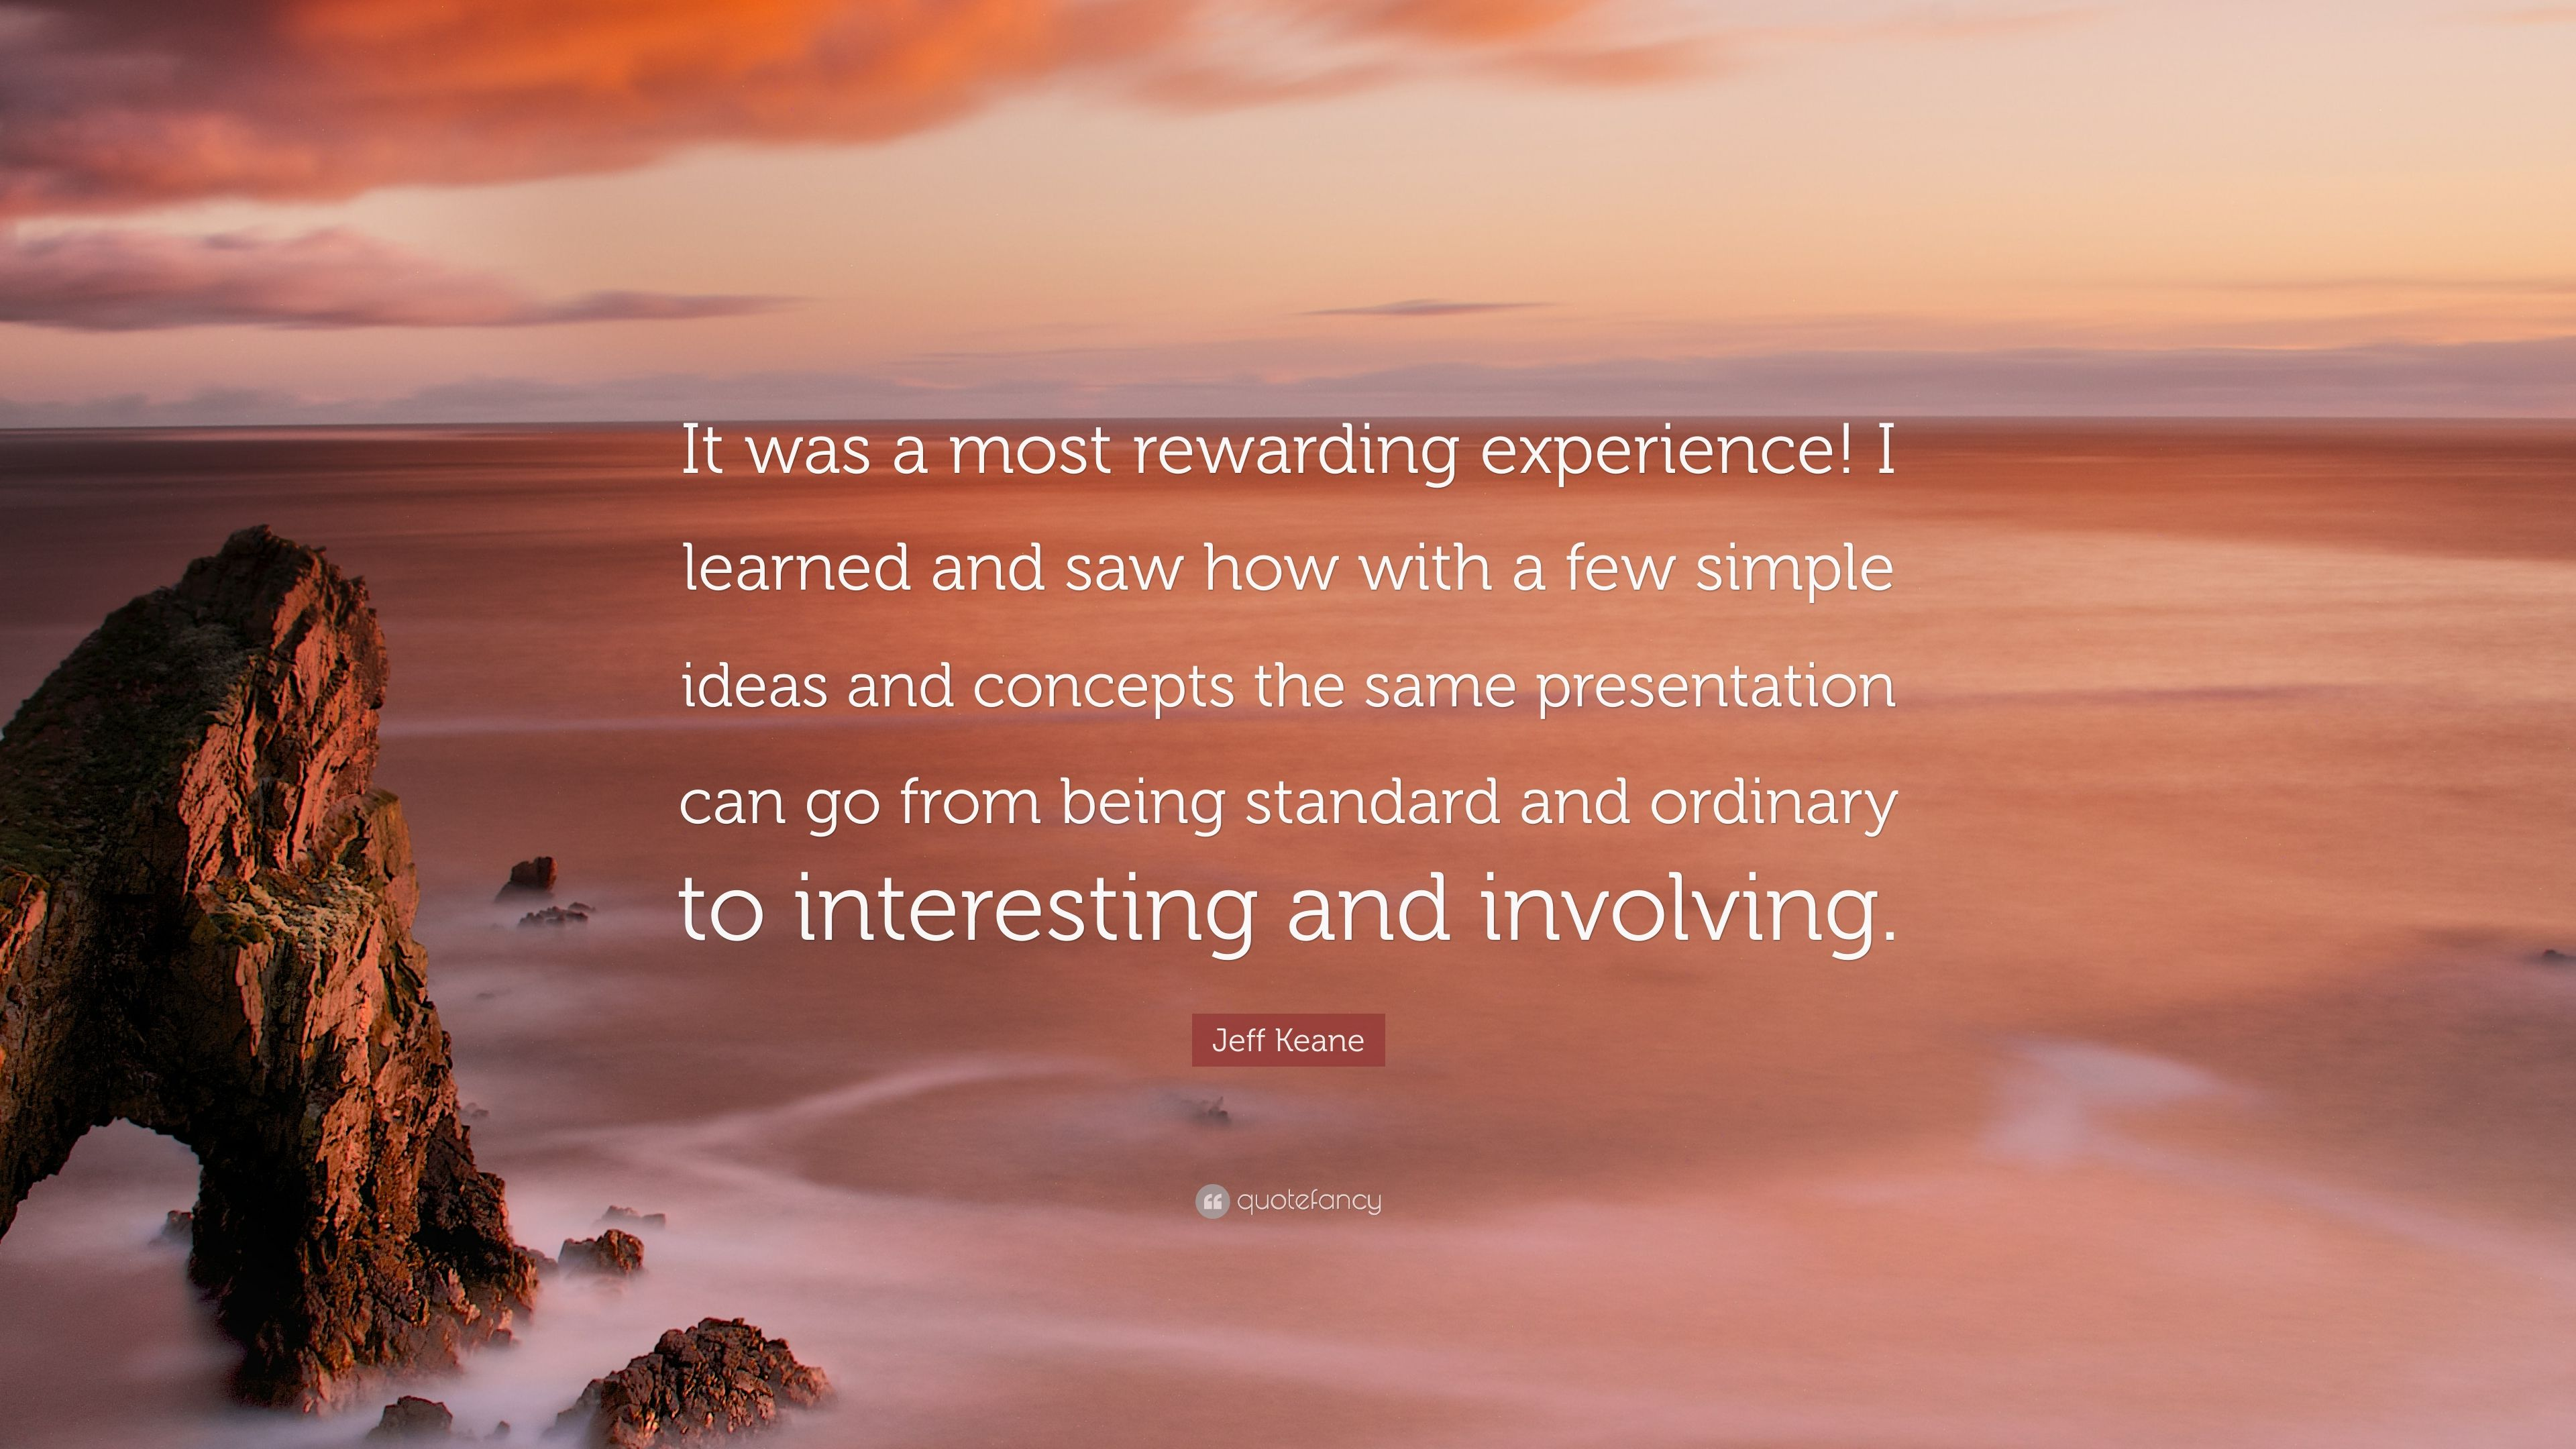 jeff keane quote it was a most rewarding experience i learned and saw